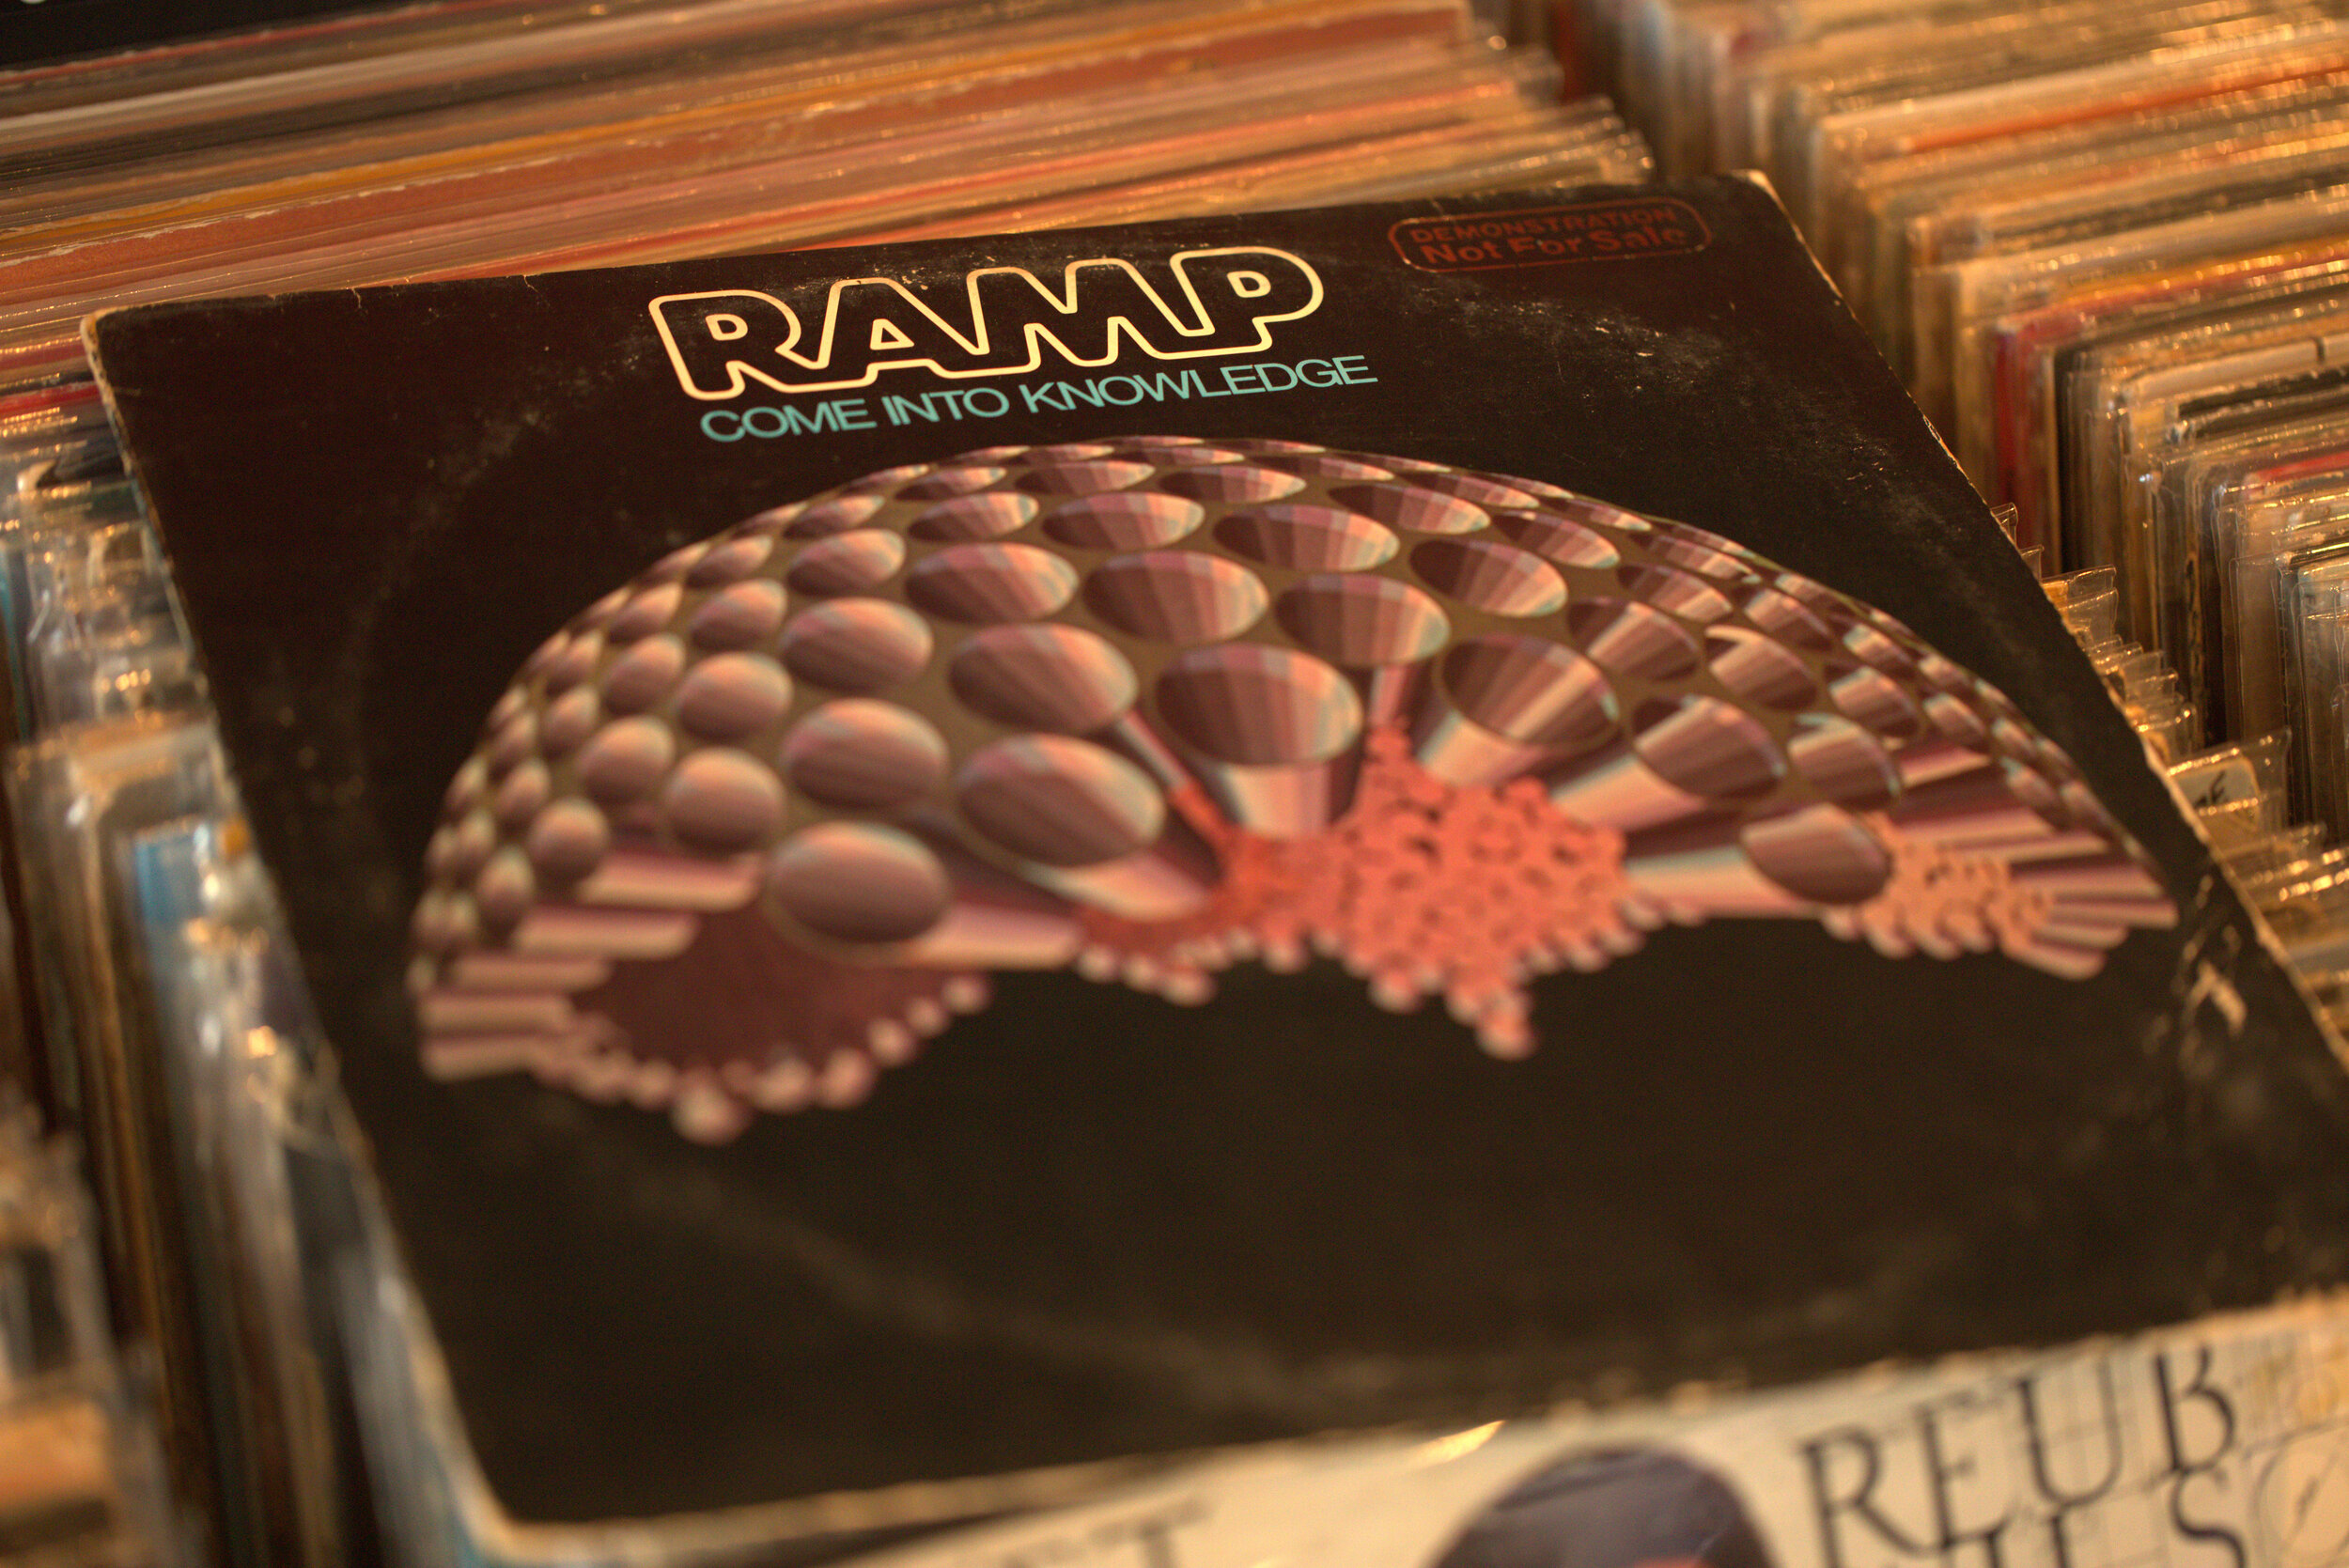 #ArtformRecords: RAMPCome Into Knowledge - RAMP stands for Roy Ayers Music Production. Though Roy Ayers is not a member of the group, he did write and produce songs on this iconic album.